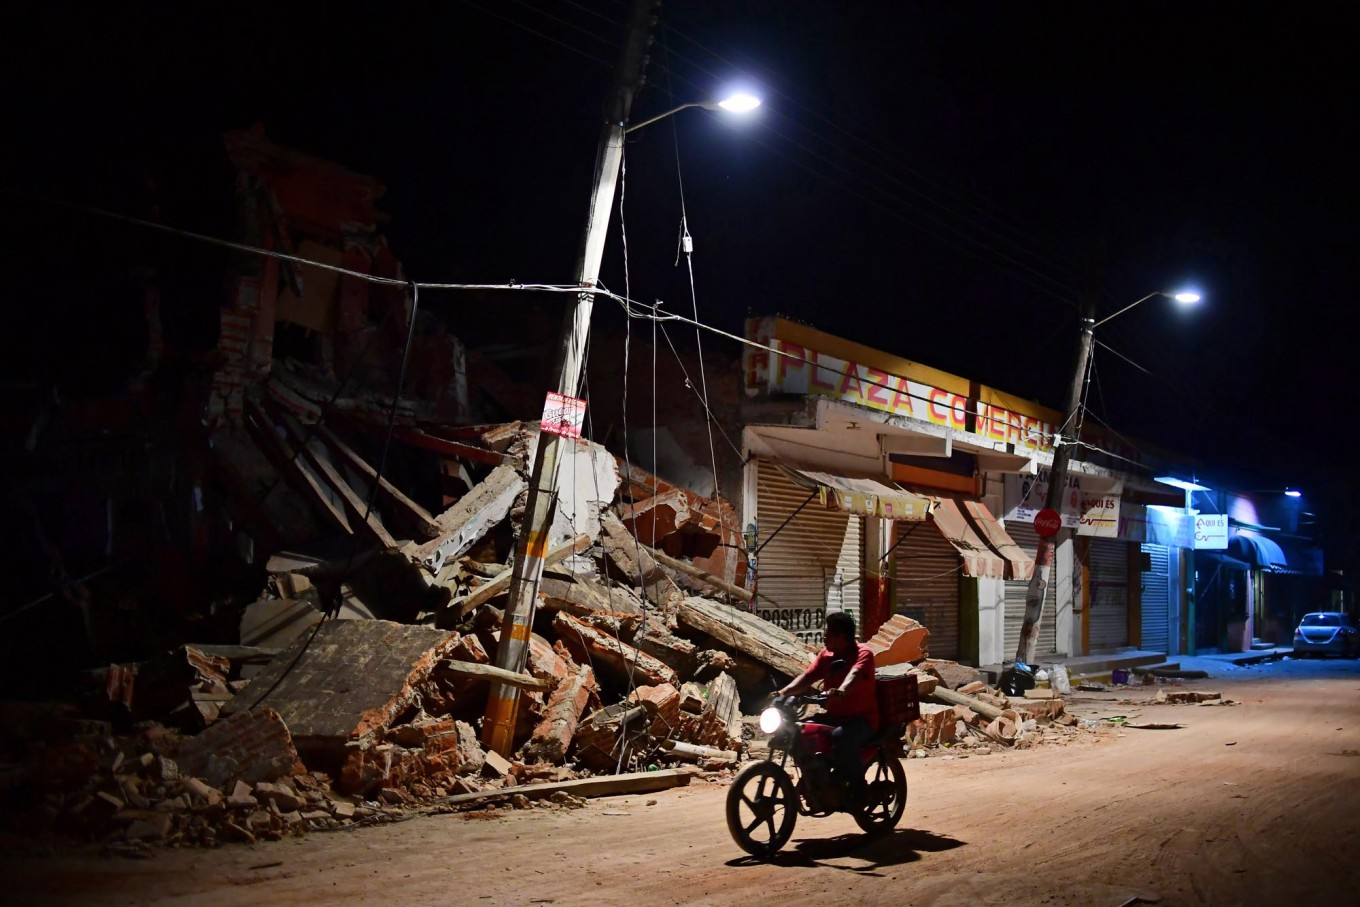 A man rides his motorbike in Juchitan de  Zaragoza, state of Oaxaca on September 9, 2017, the day after an 8.2 magnitude earthquake hit Mexico's Pacific coast, Rescuers pulled bodies from the rubble and grieving families carried coffins through the streets after Mexico's  biggest earthquake in a century killed 65  people, while elsewhere two died in mudslides unleashed by storm Katia. AFP/ Ronaldo Schemidt